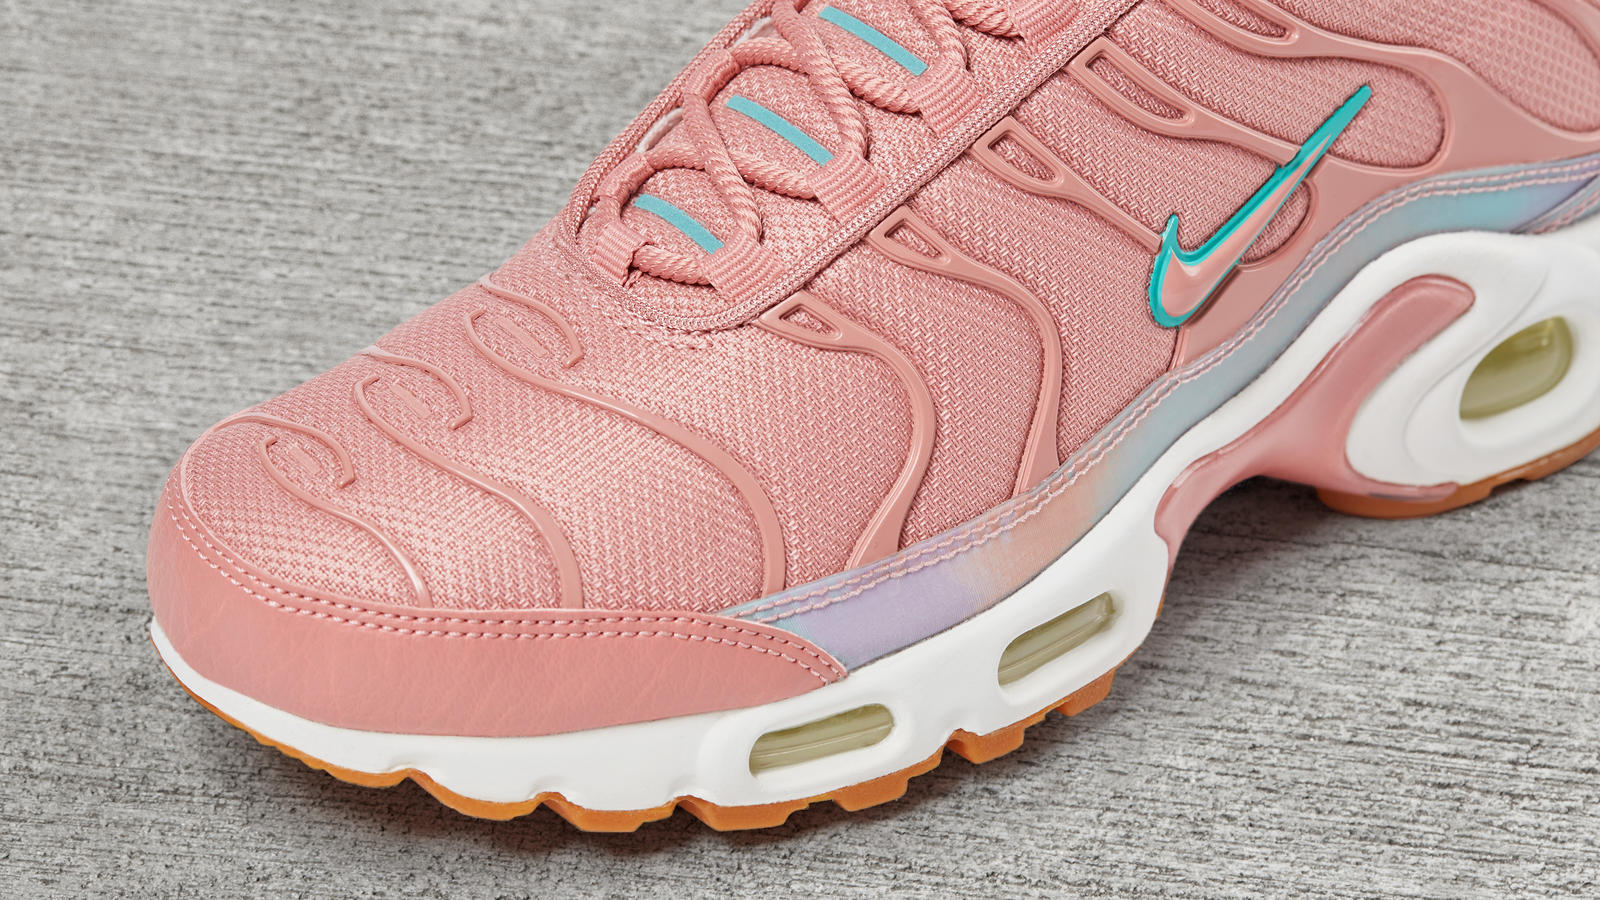 Air max plus holographic pink 3 hd 1600